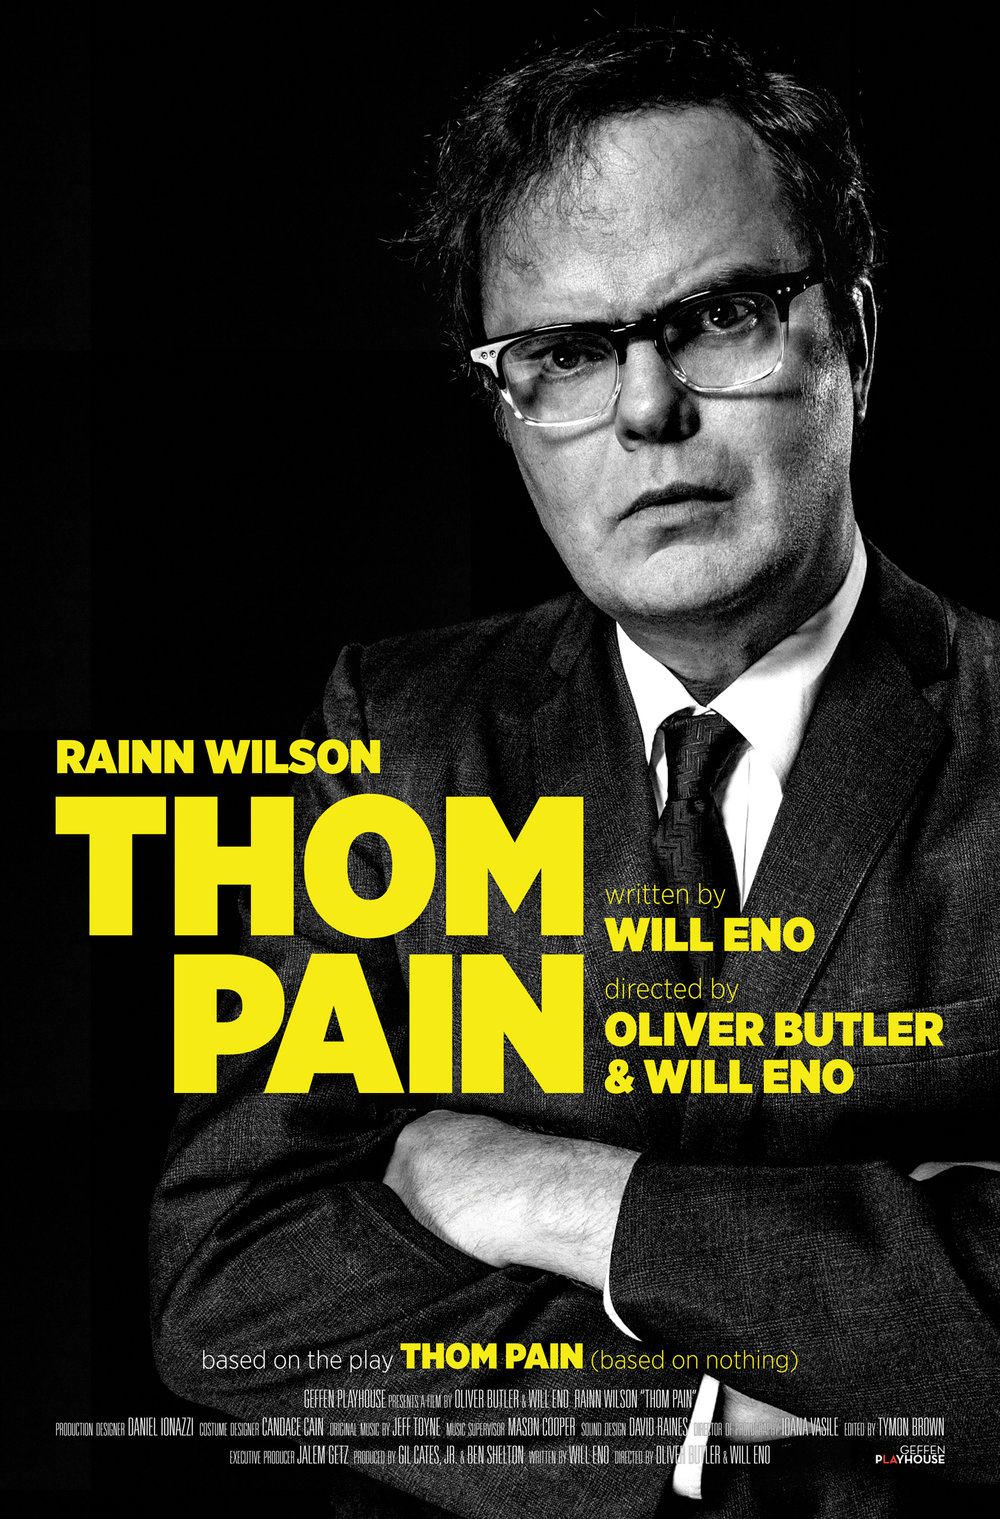 Special Event - screening& discussion with Rainn Wilson - Thom Pain is just like you, except worse. One night, he finds himself on a stage, in the dark, in a theatre. In the audience are people who, just like him, were born and will die. Thom is going to try to make sense of it all. He's going to try to save his life, to save their life, to save your life - in that order. A camera crew captures the night, as various forces align to produce a recklessJune 11th, 7pmBjorklundenFestival or Premium Pass Required